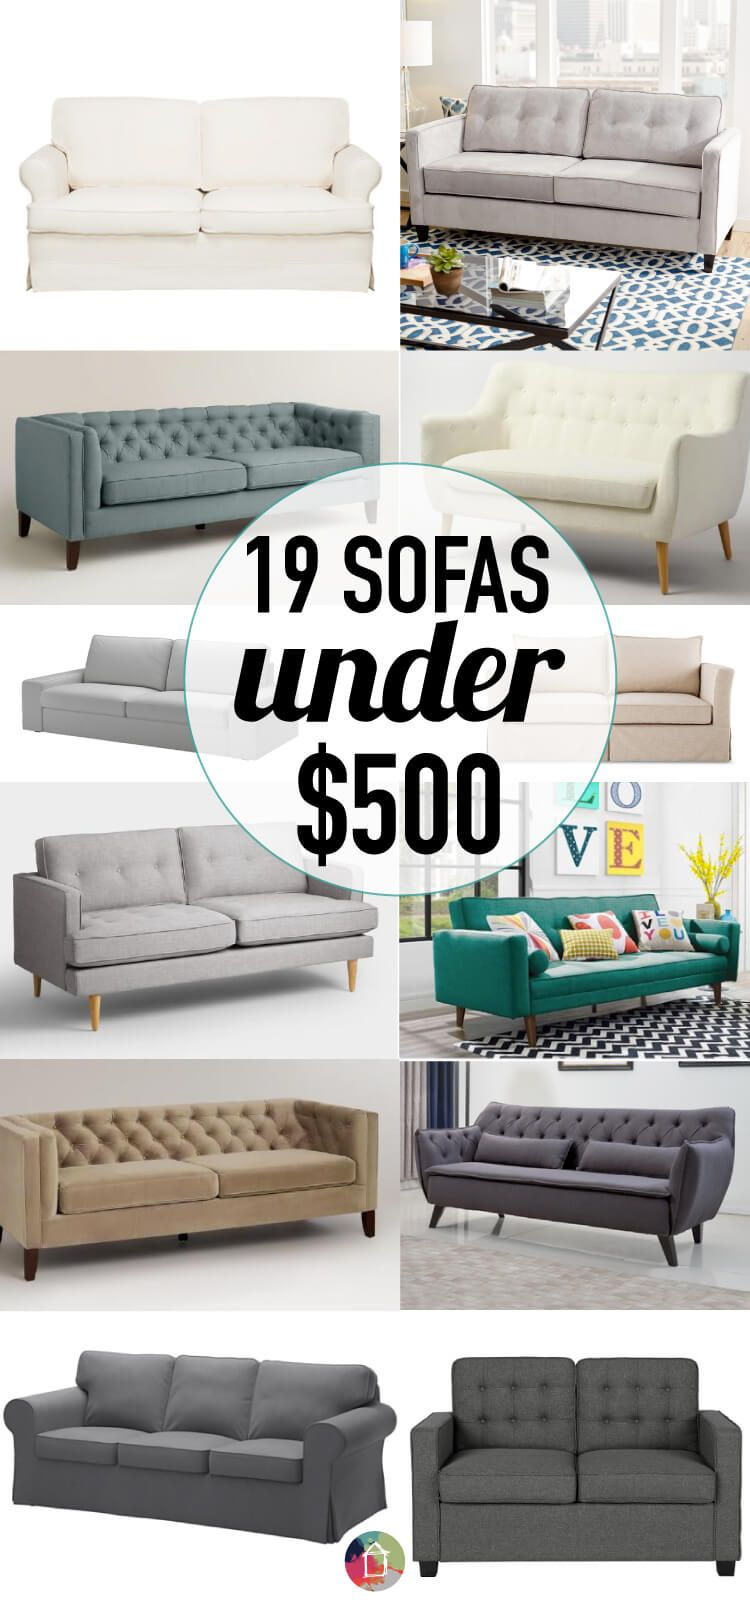 Sofa Angebote Sofa Deals That Don T Skimp On Style Blogger Home Projects We